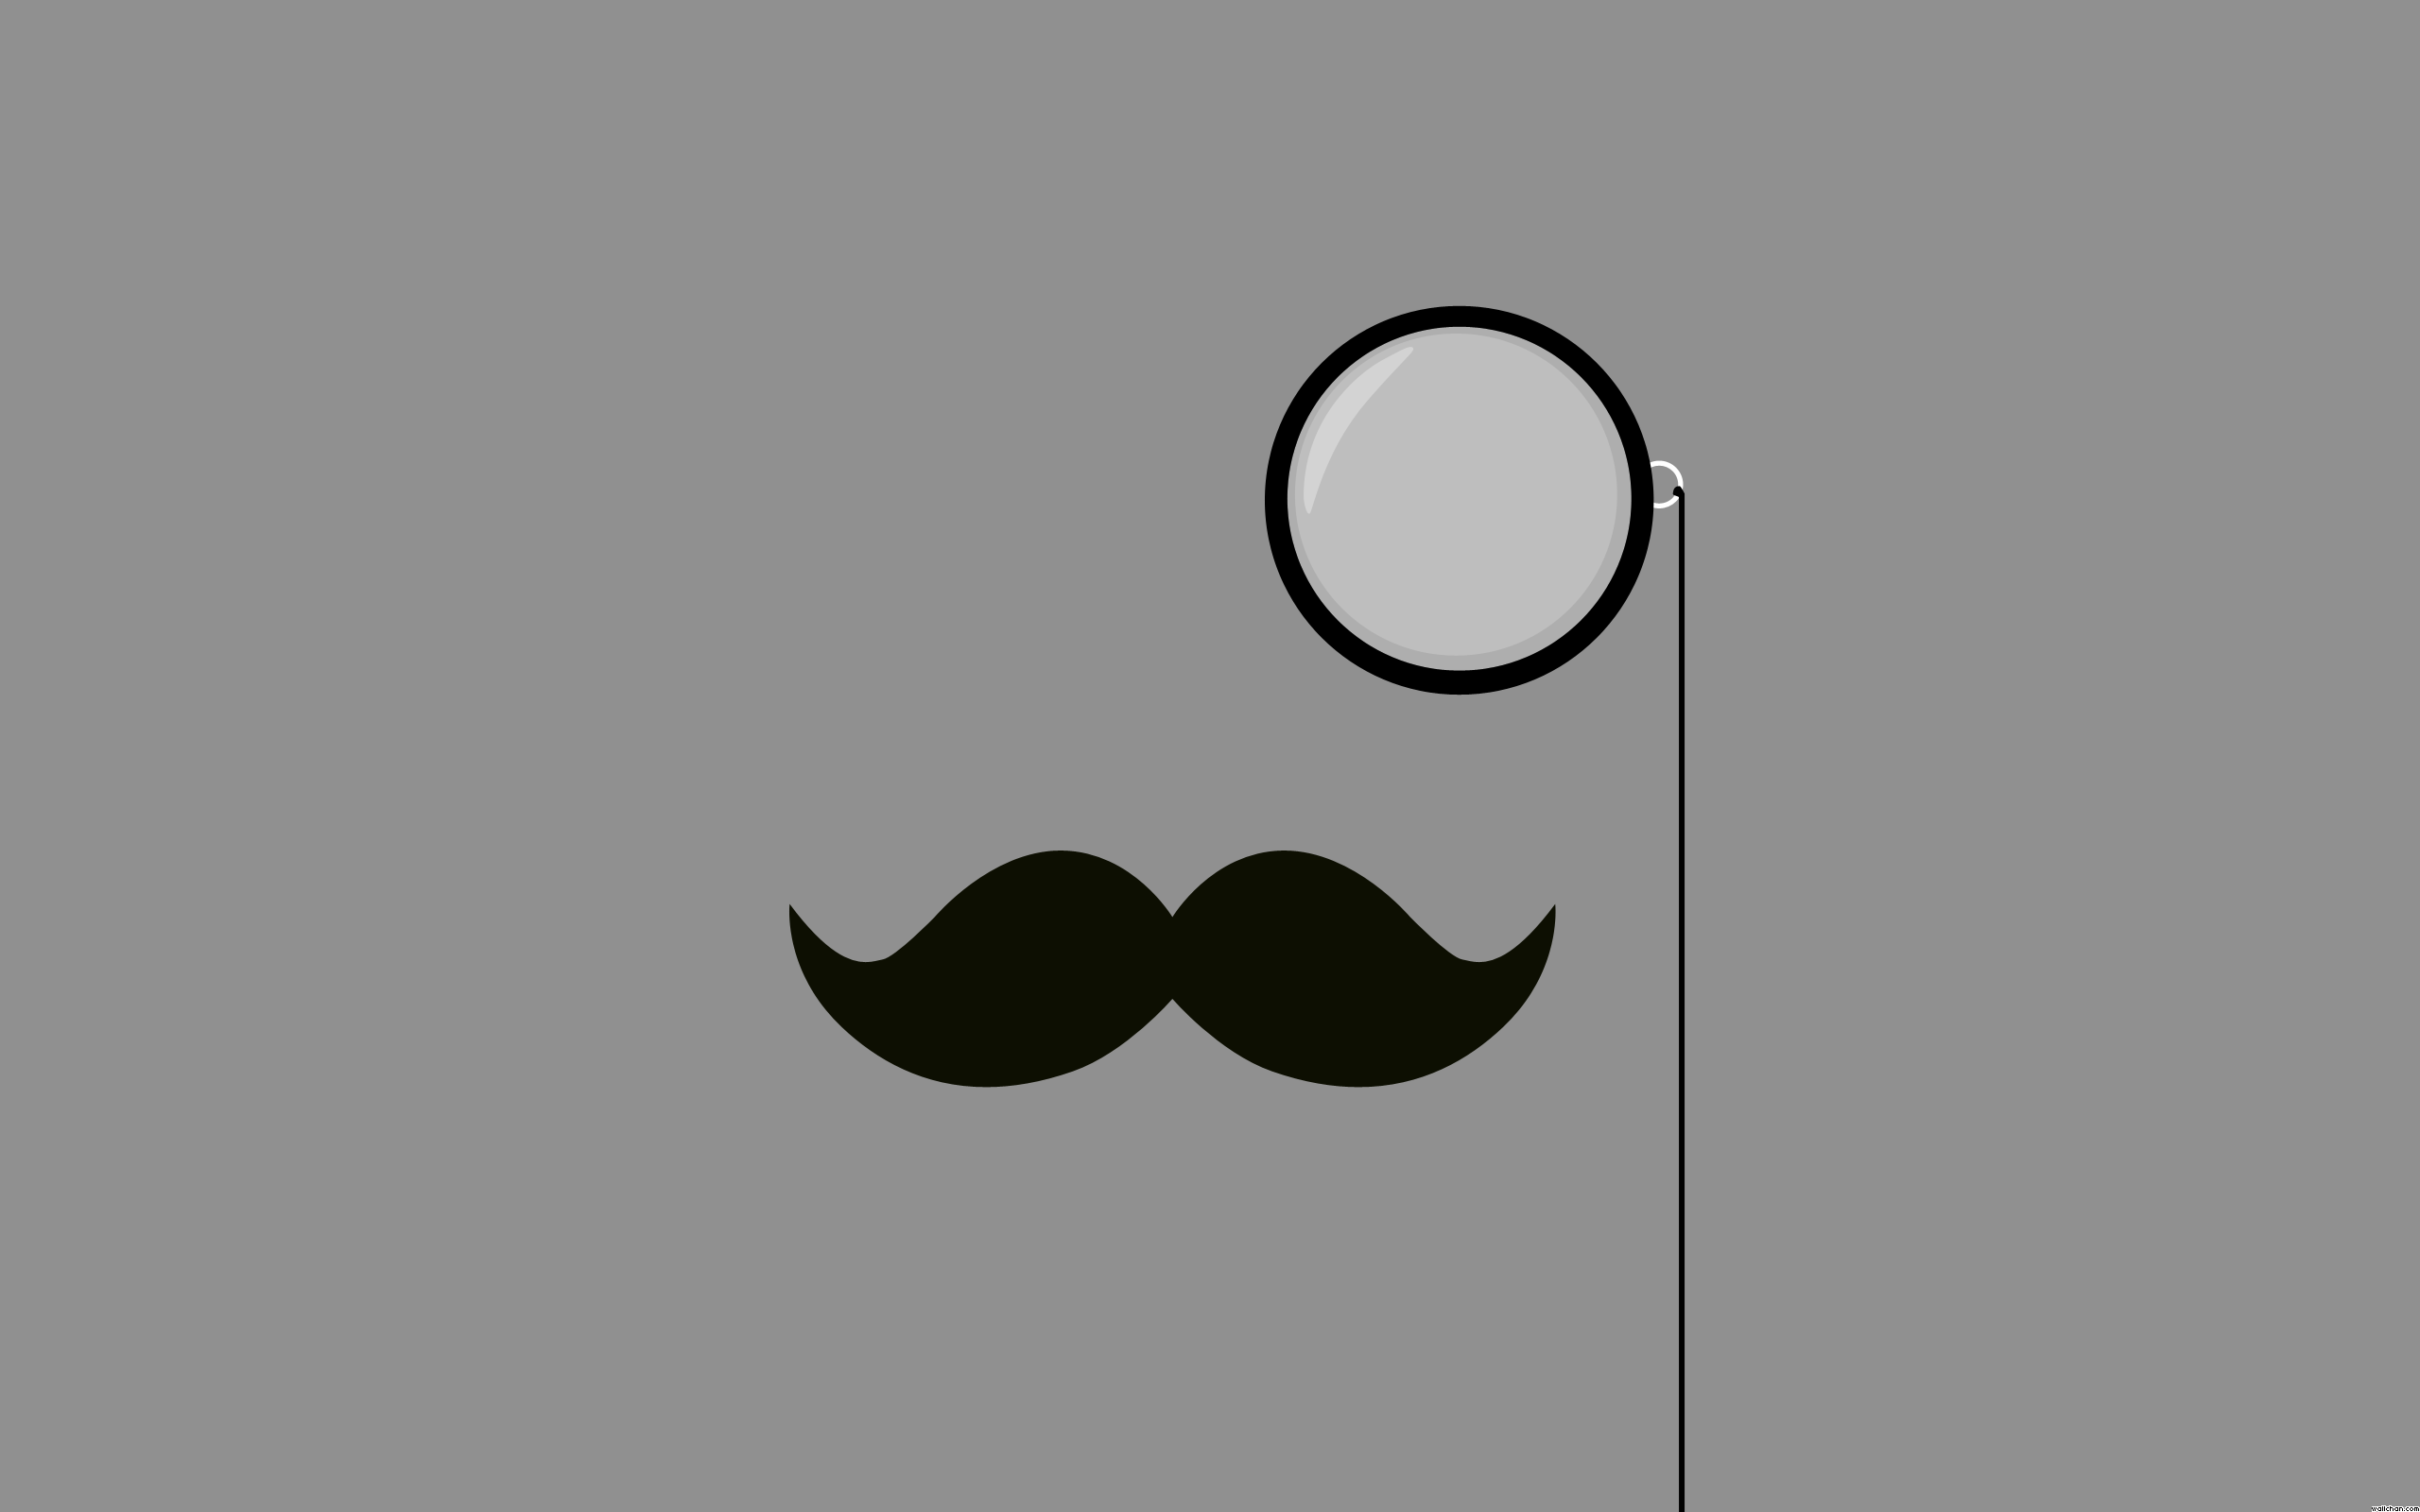 38784065 Adorable Mustache Images HDQ Cover, 2560x1600